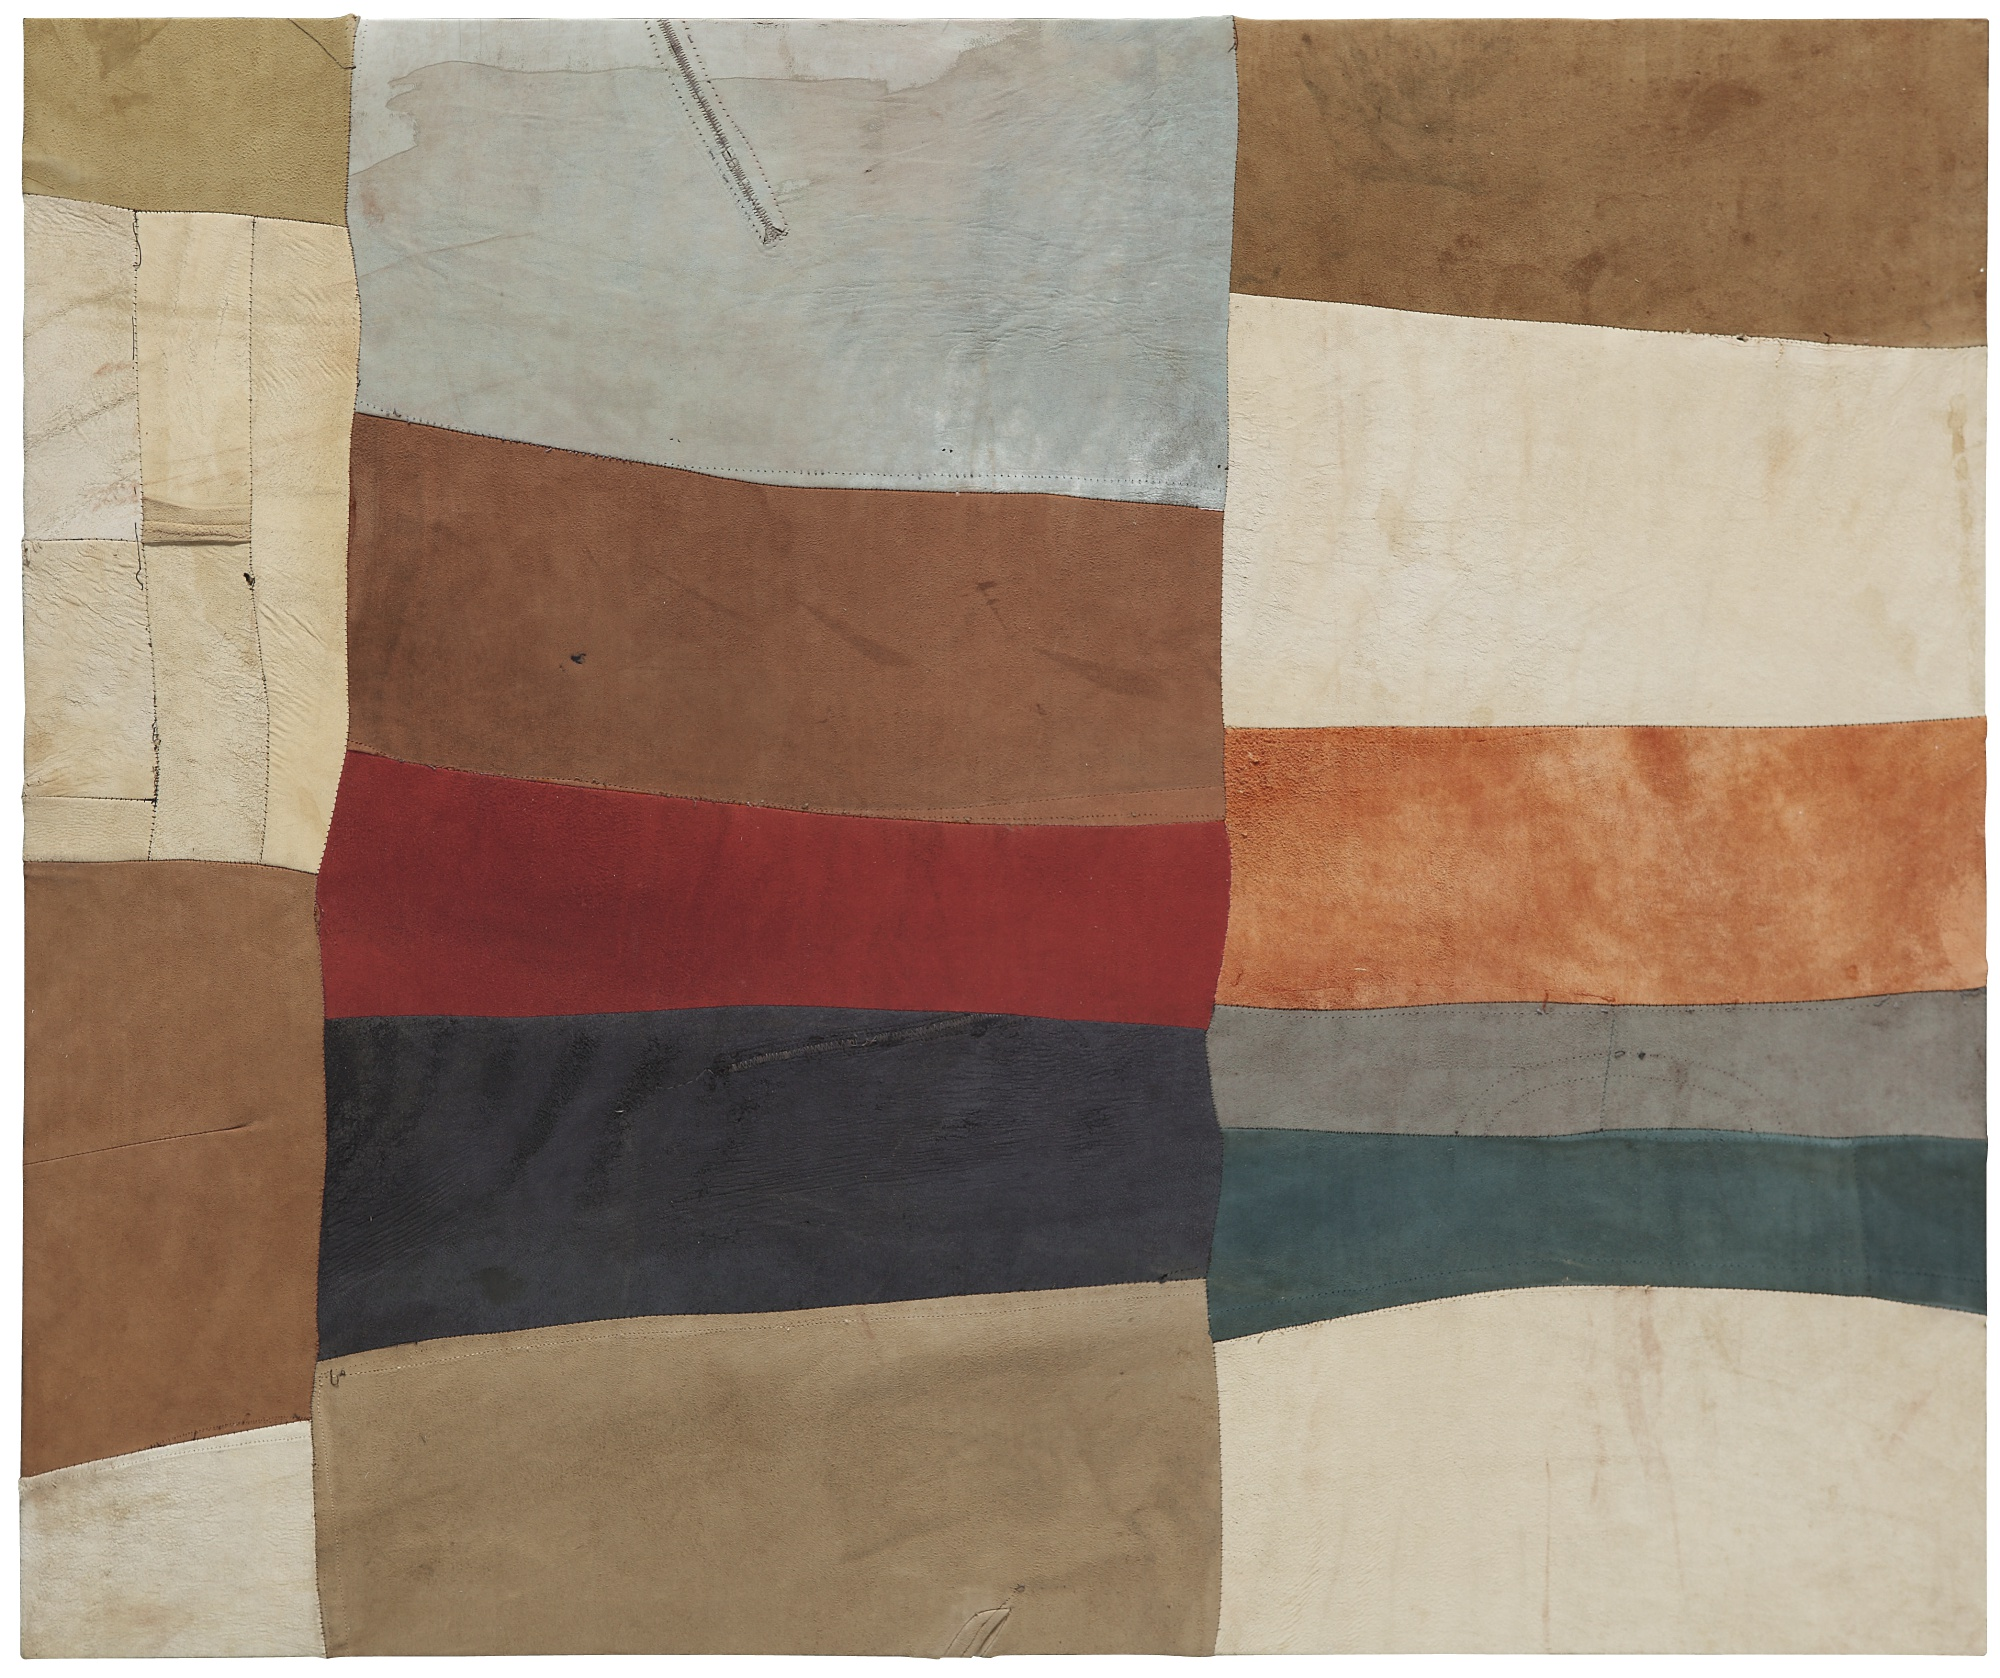 Nuvolo-Untitled-1961